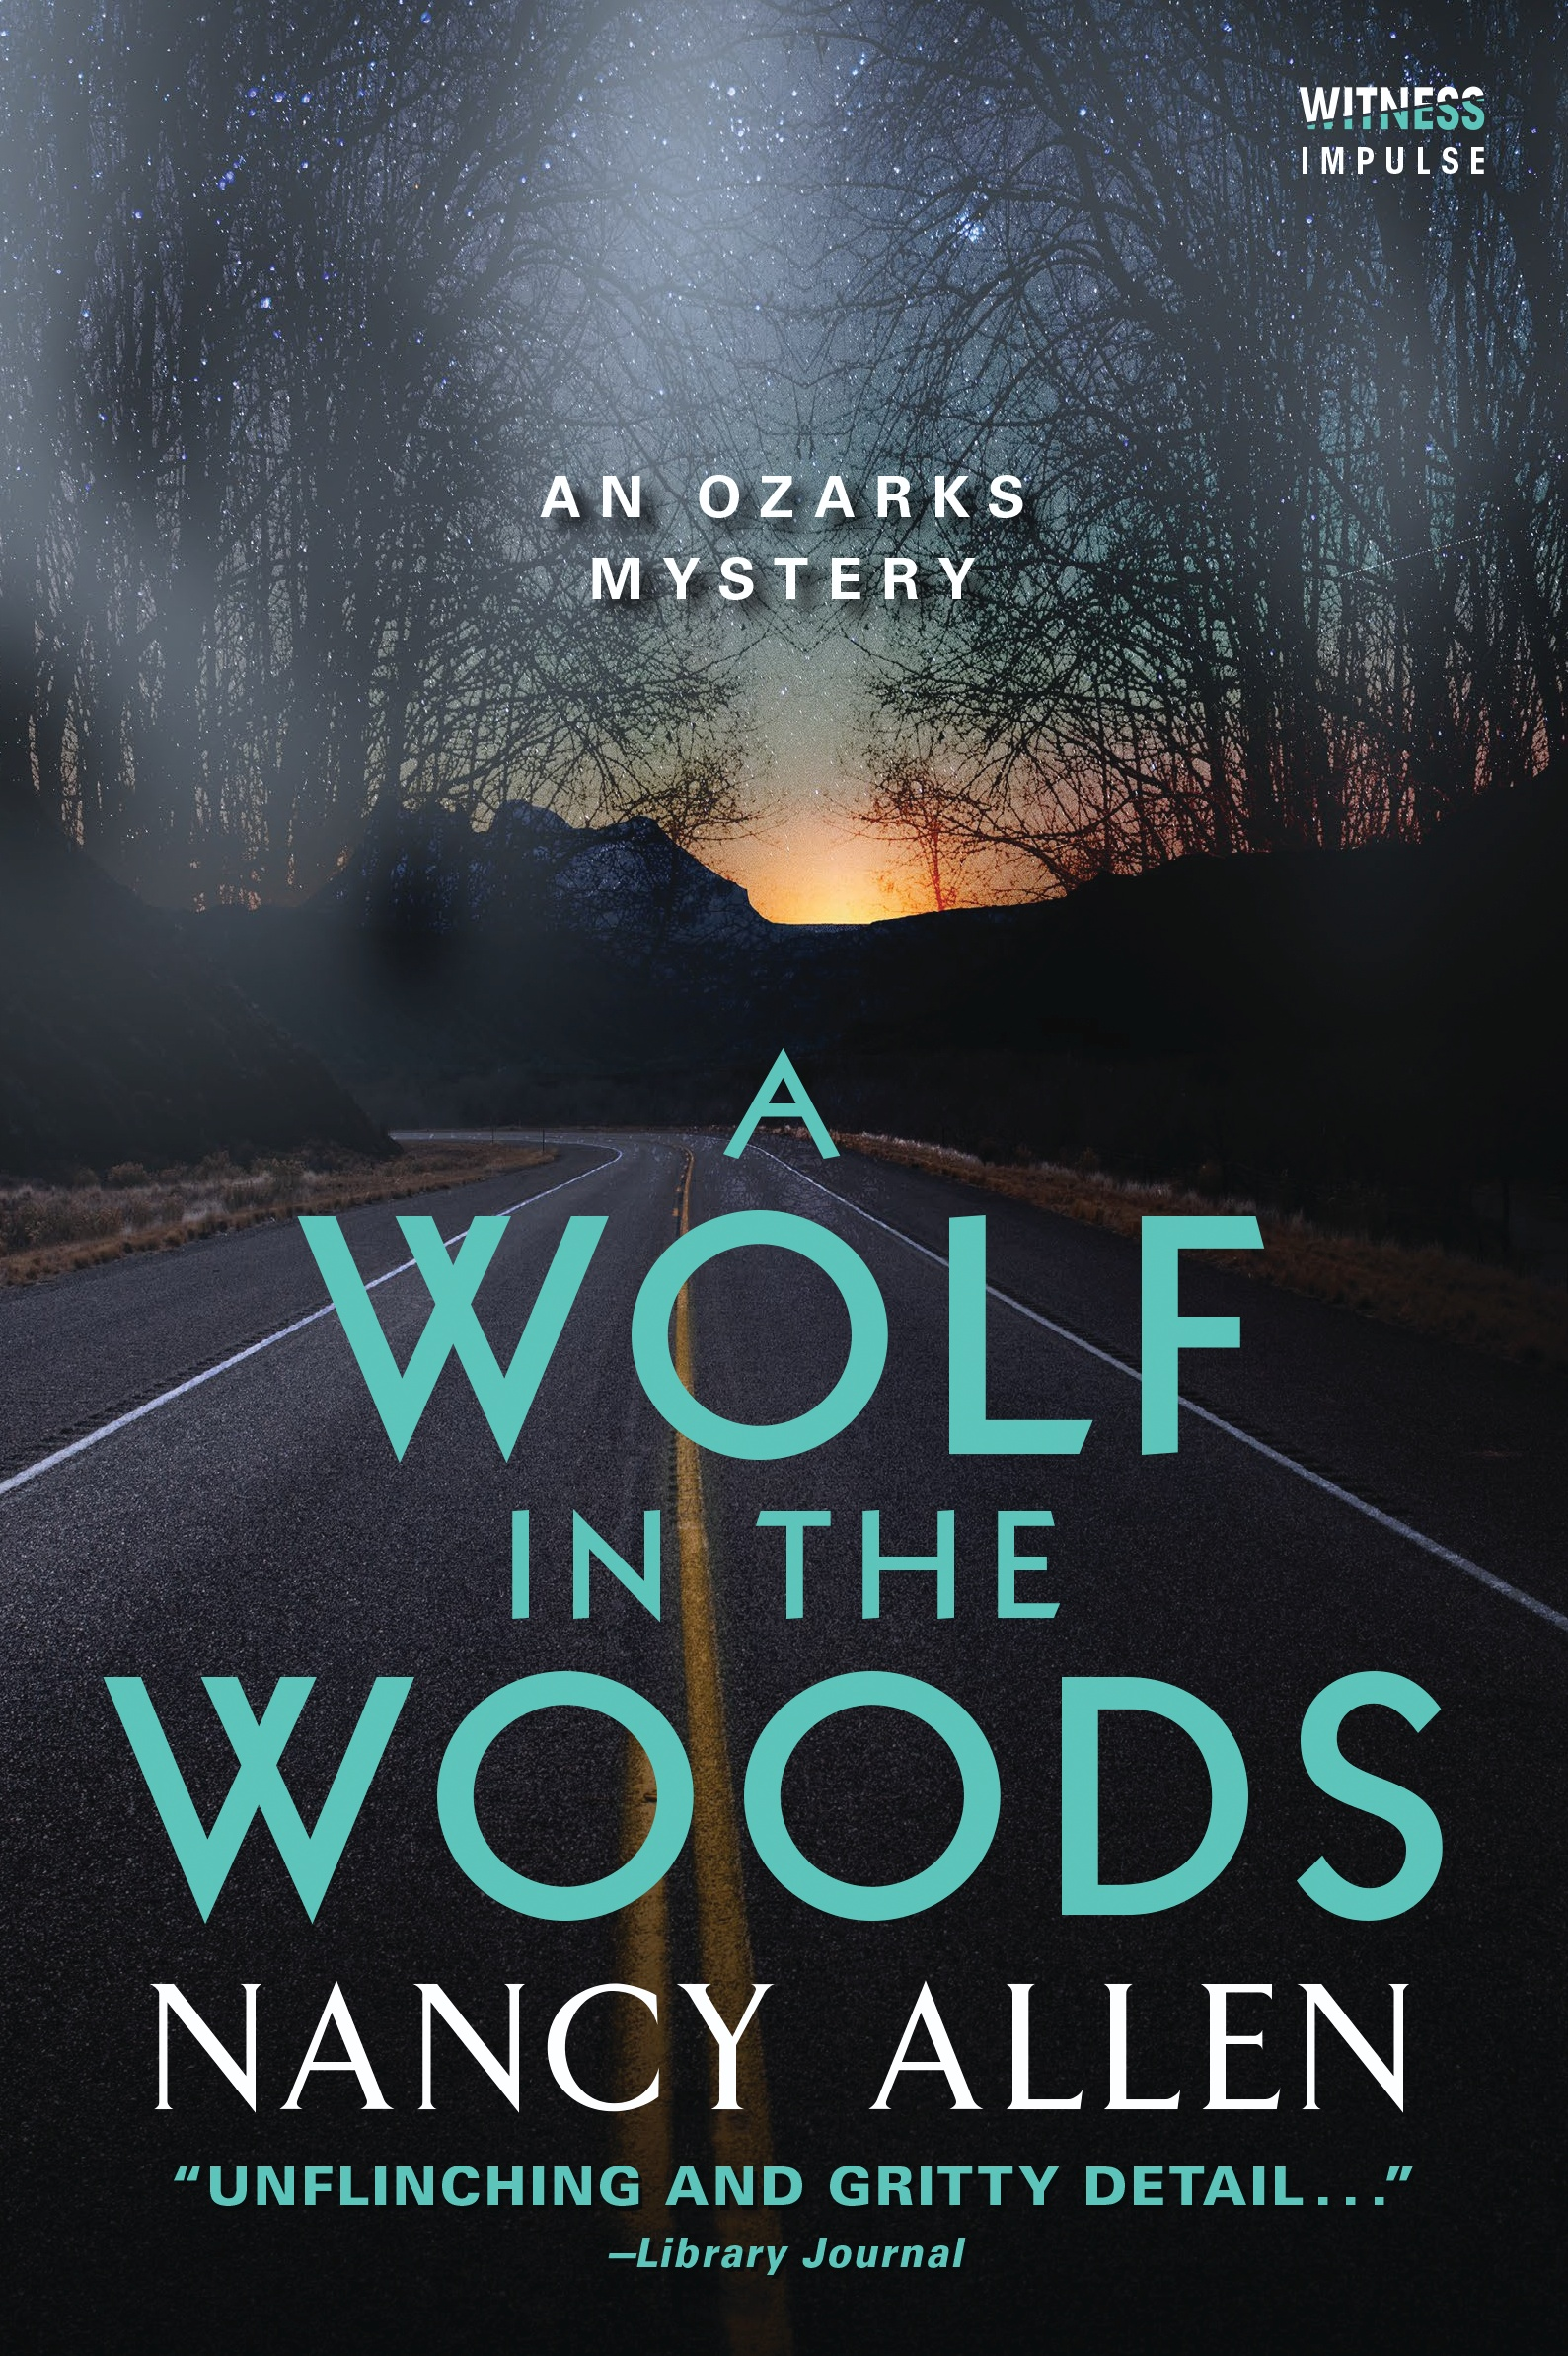 A Wolf in the Woods An Ozarks Mystery #4. Nancy Allen Witness Impulse,  February 2018. ISBN 978-0-06-243878-2